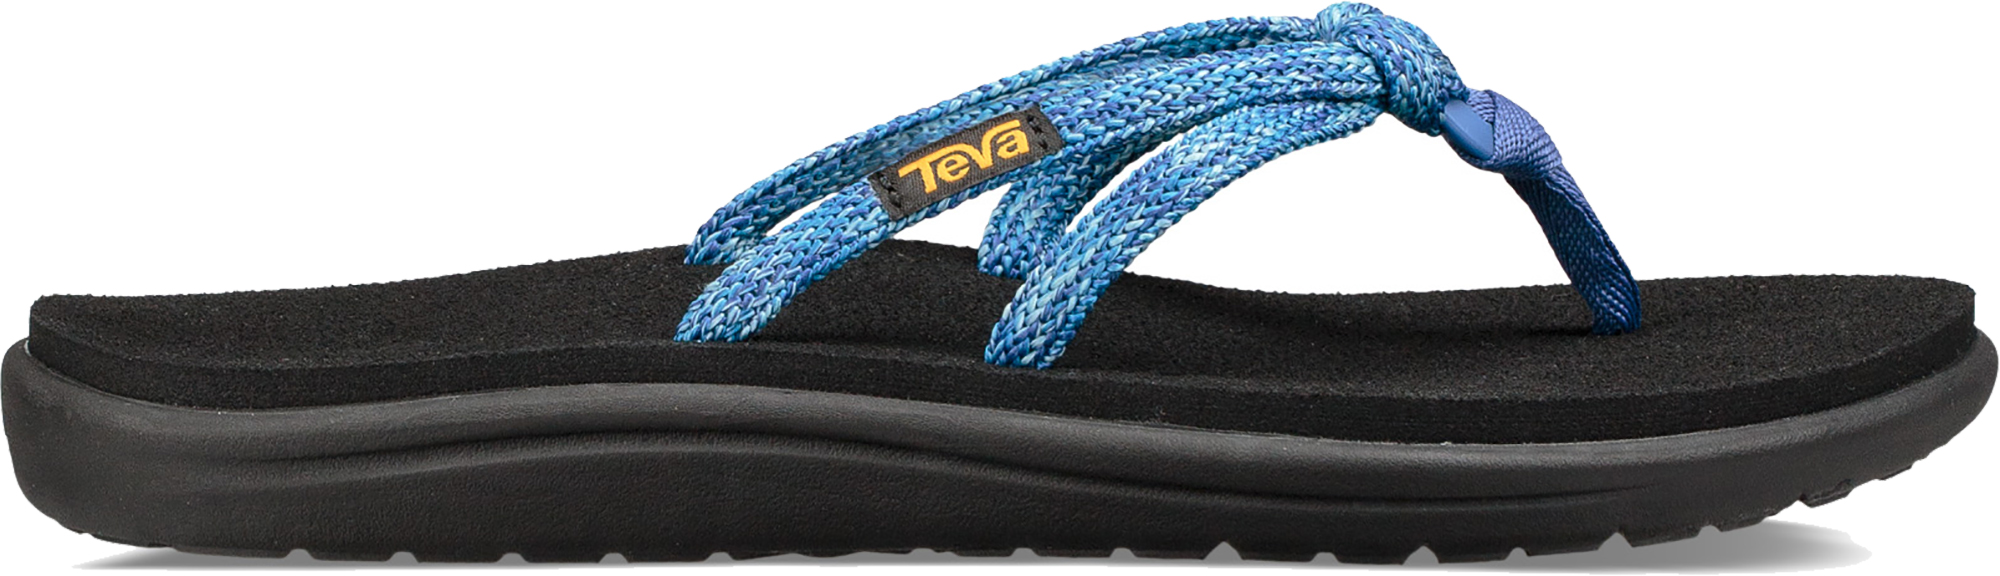 377b202b8dcd5 Teva Women s Voya Tri-flip Flip Flops Comfortable Casual Style Uk4 Blue  Multi. About this product. Picture 1 of 5  Picture 2 of 5 ...